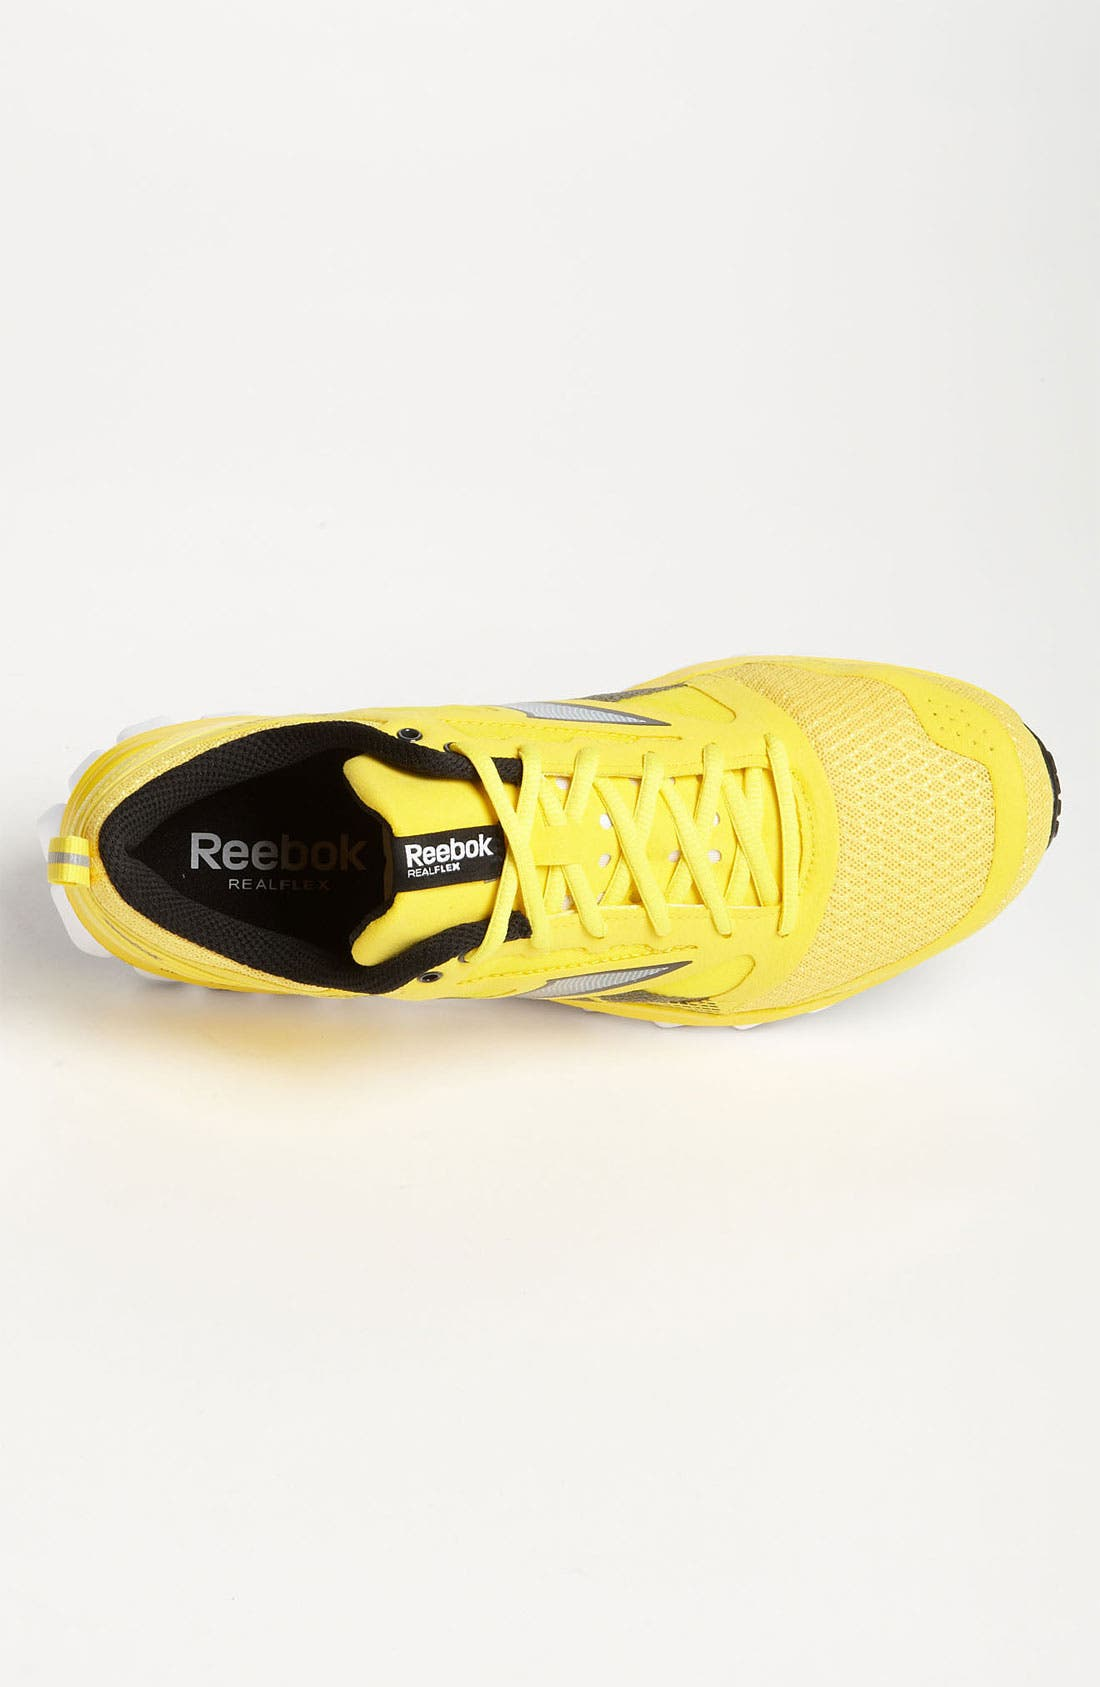 Alternate Image 3  - Reebok 'RealFlex - Speed' Running Shoe (Men)